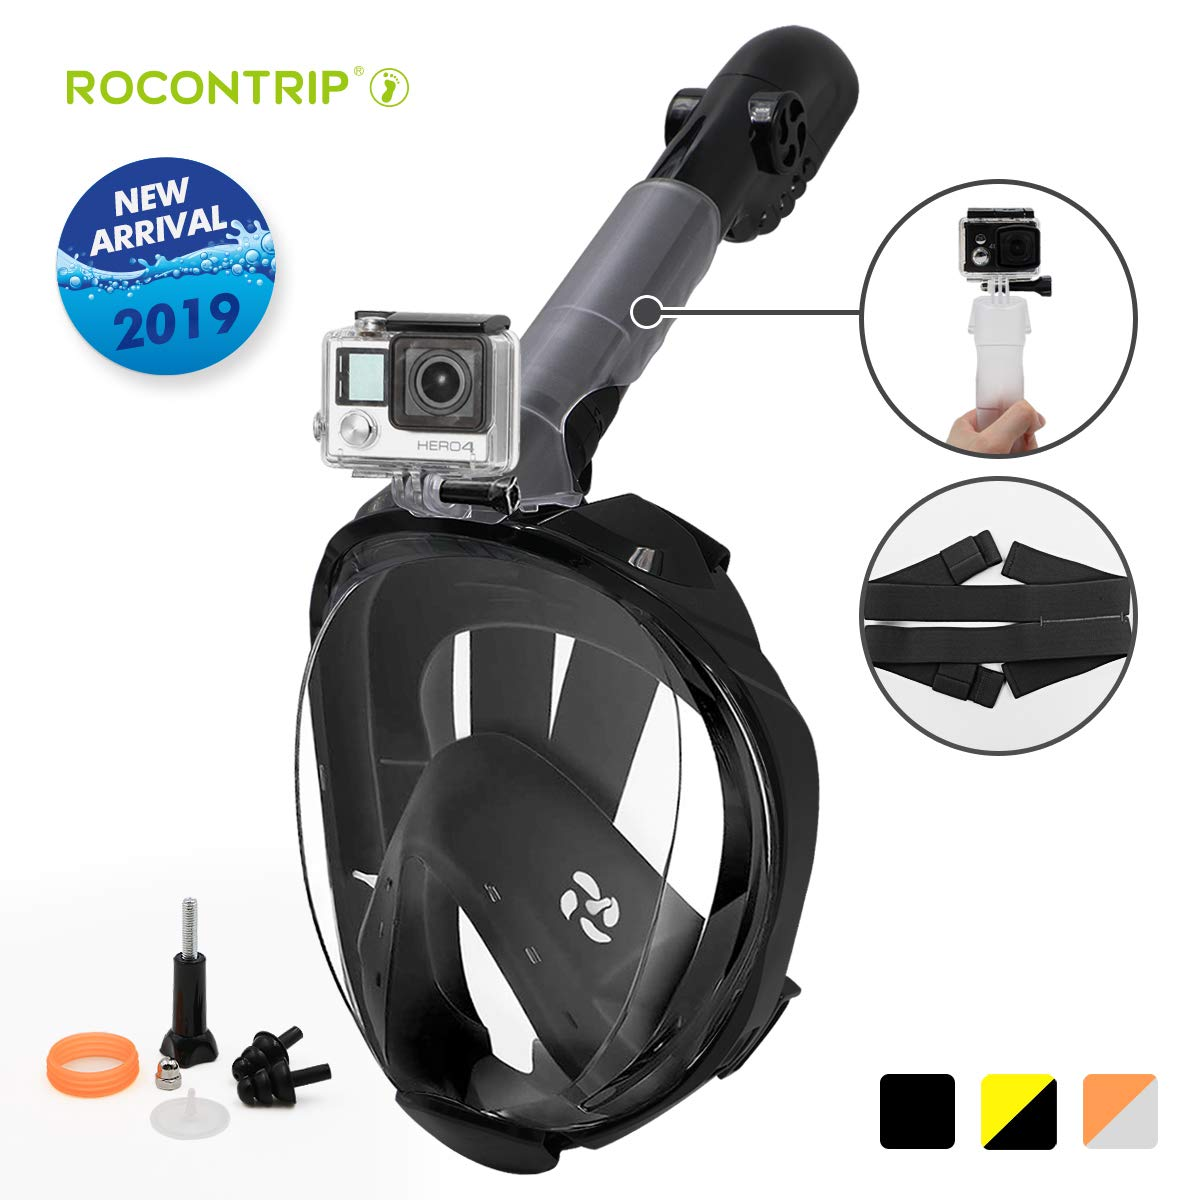 ROCONTRIP Snorkel Mask Full Face Panoramic 180/°View Design Newest Breathing System Dry Top Set Anti-Fog Anti-Leak for Perfect Diving 2019 Safety Upgraded Version